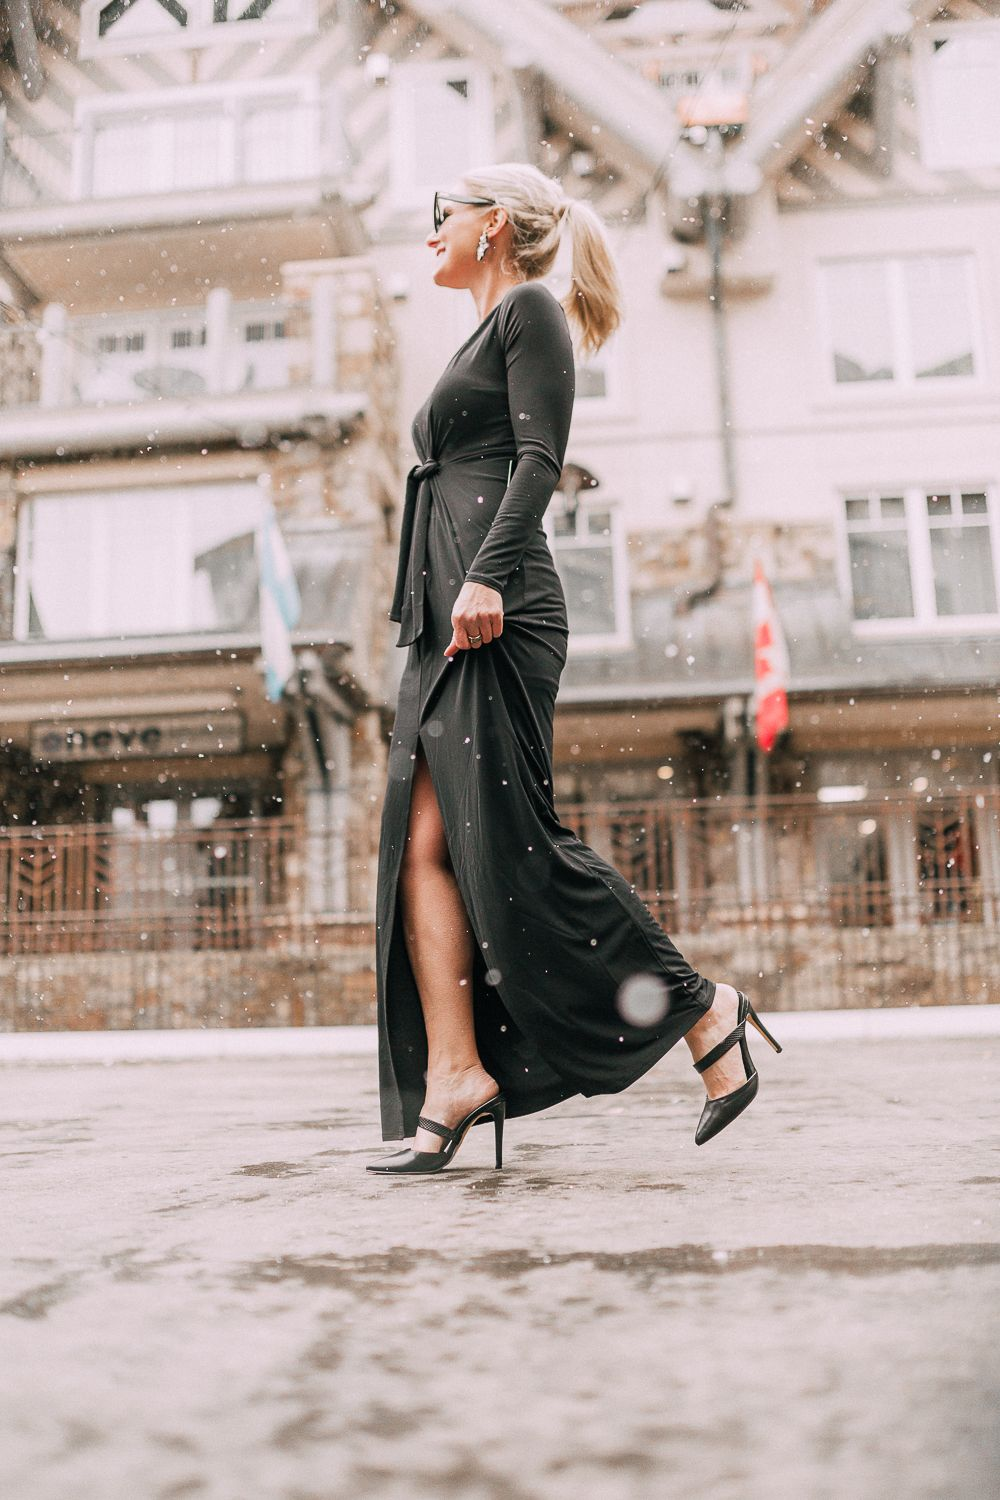 8d2852b0807 Unexpected holiday party outfits featuring a long black maxi dress with high  slit to show off legs and a knot under the bust on blonde fashion blogger  in ...